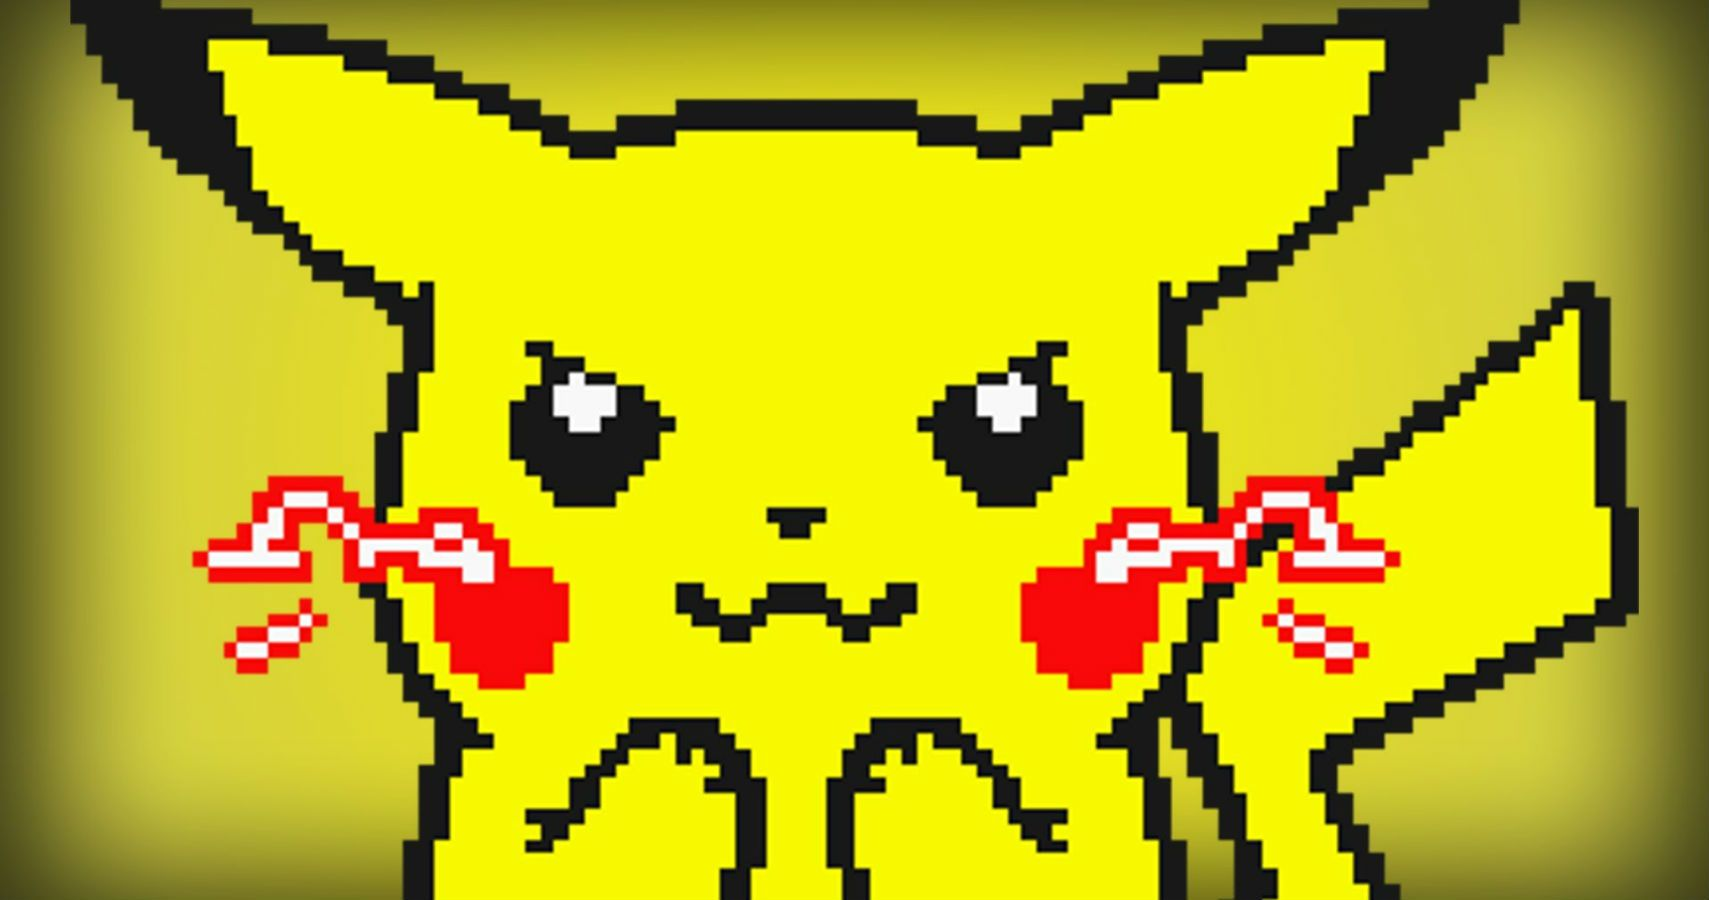 Hate Flash? Pikachu Can Briefly Light Up A Cave After Learning Thunder In Pokemon Yellow